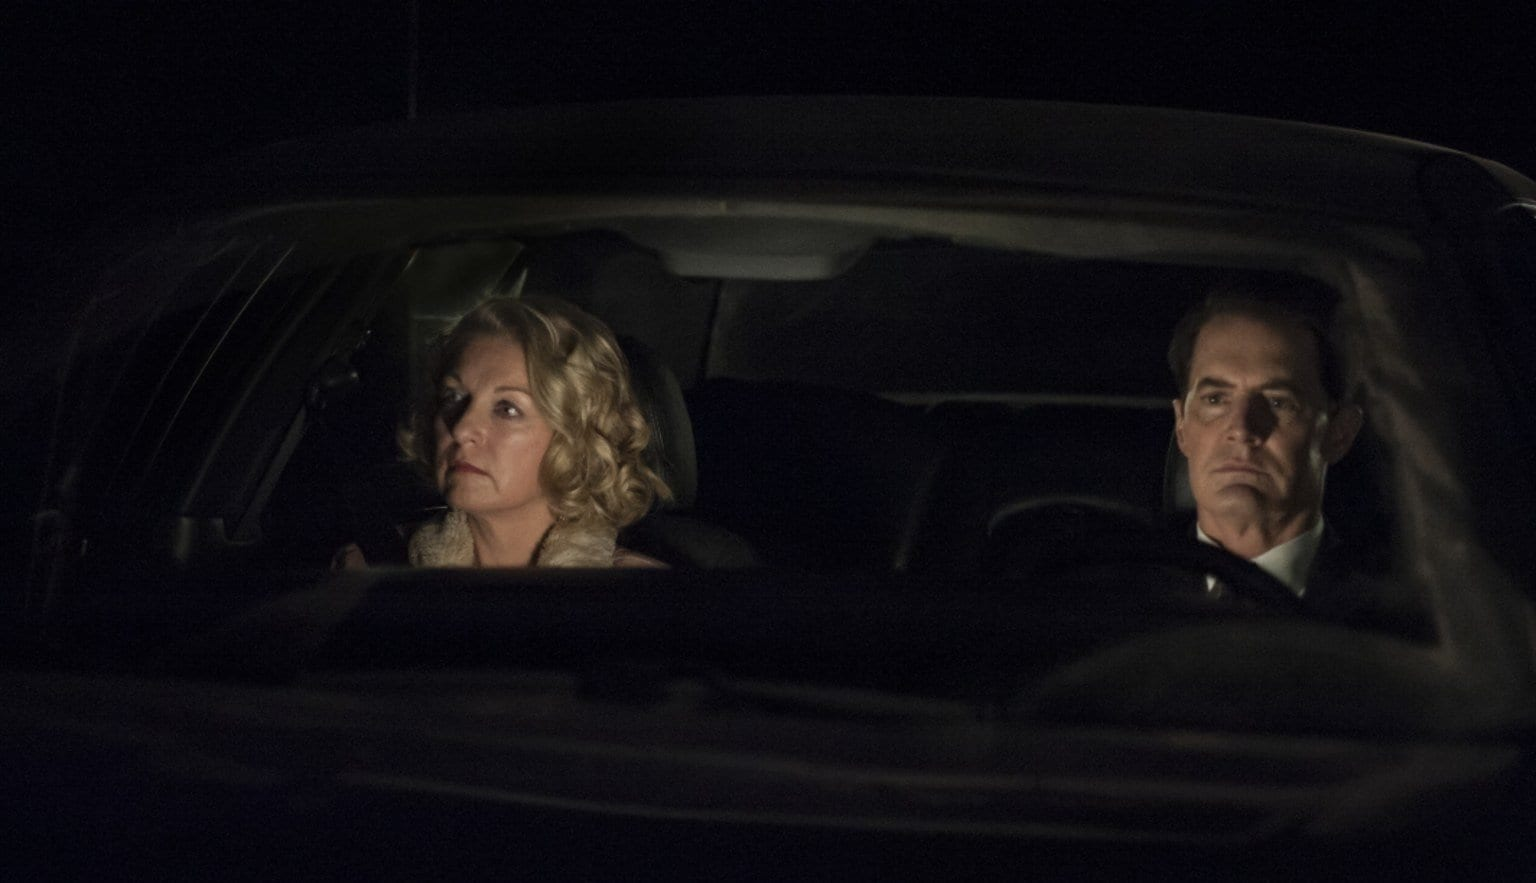 Cooper and Carrie driving at night